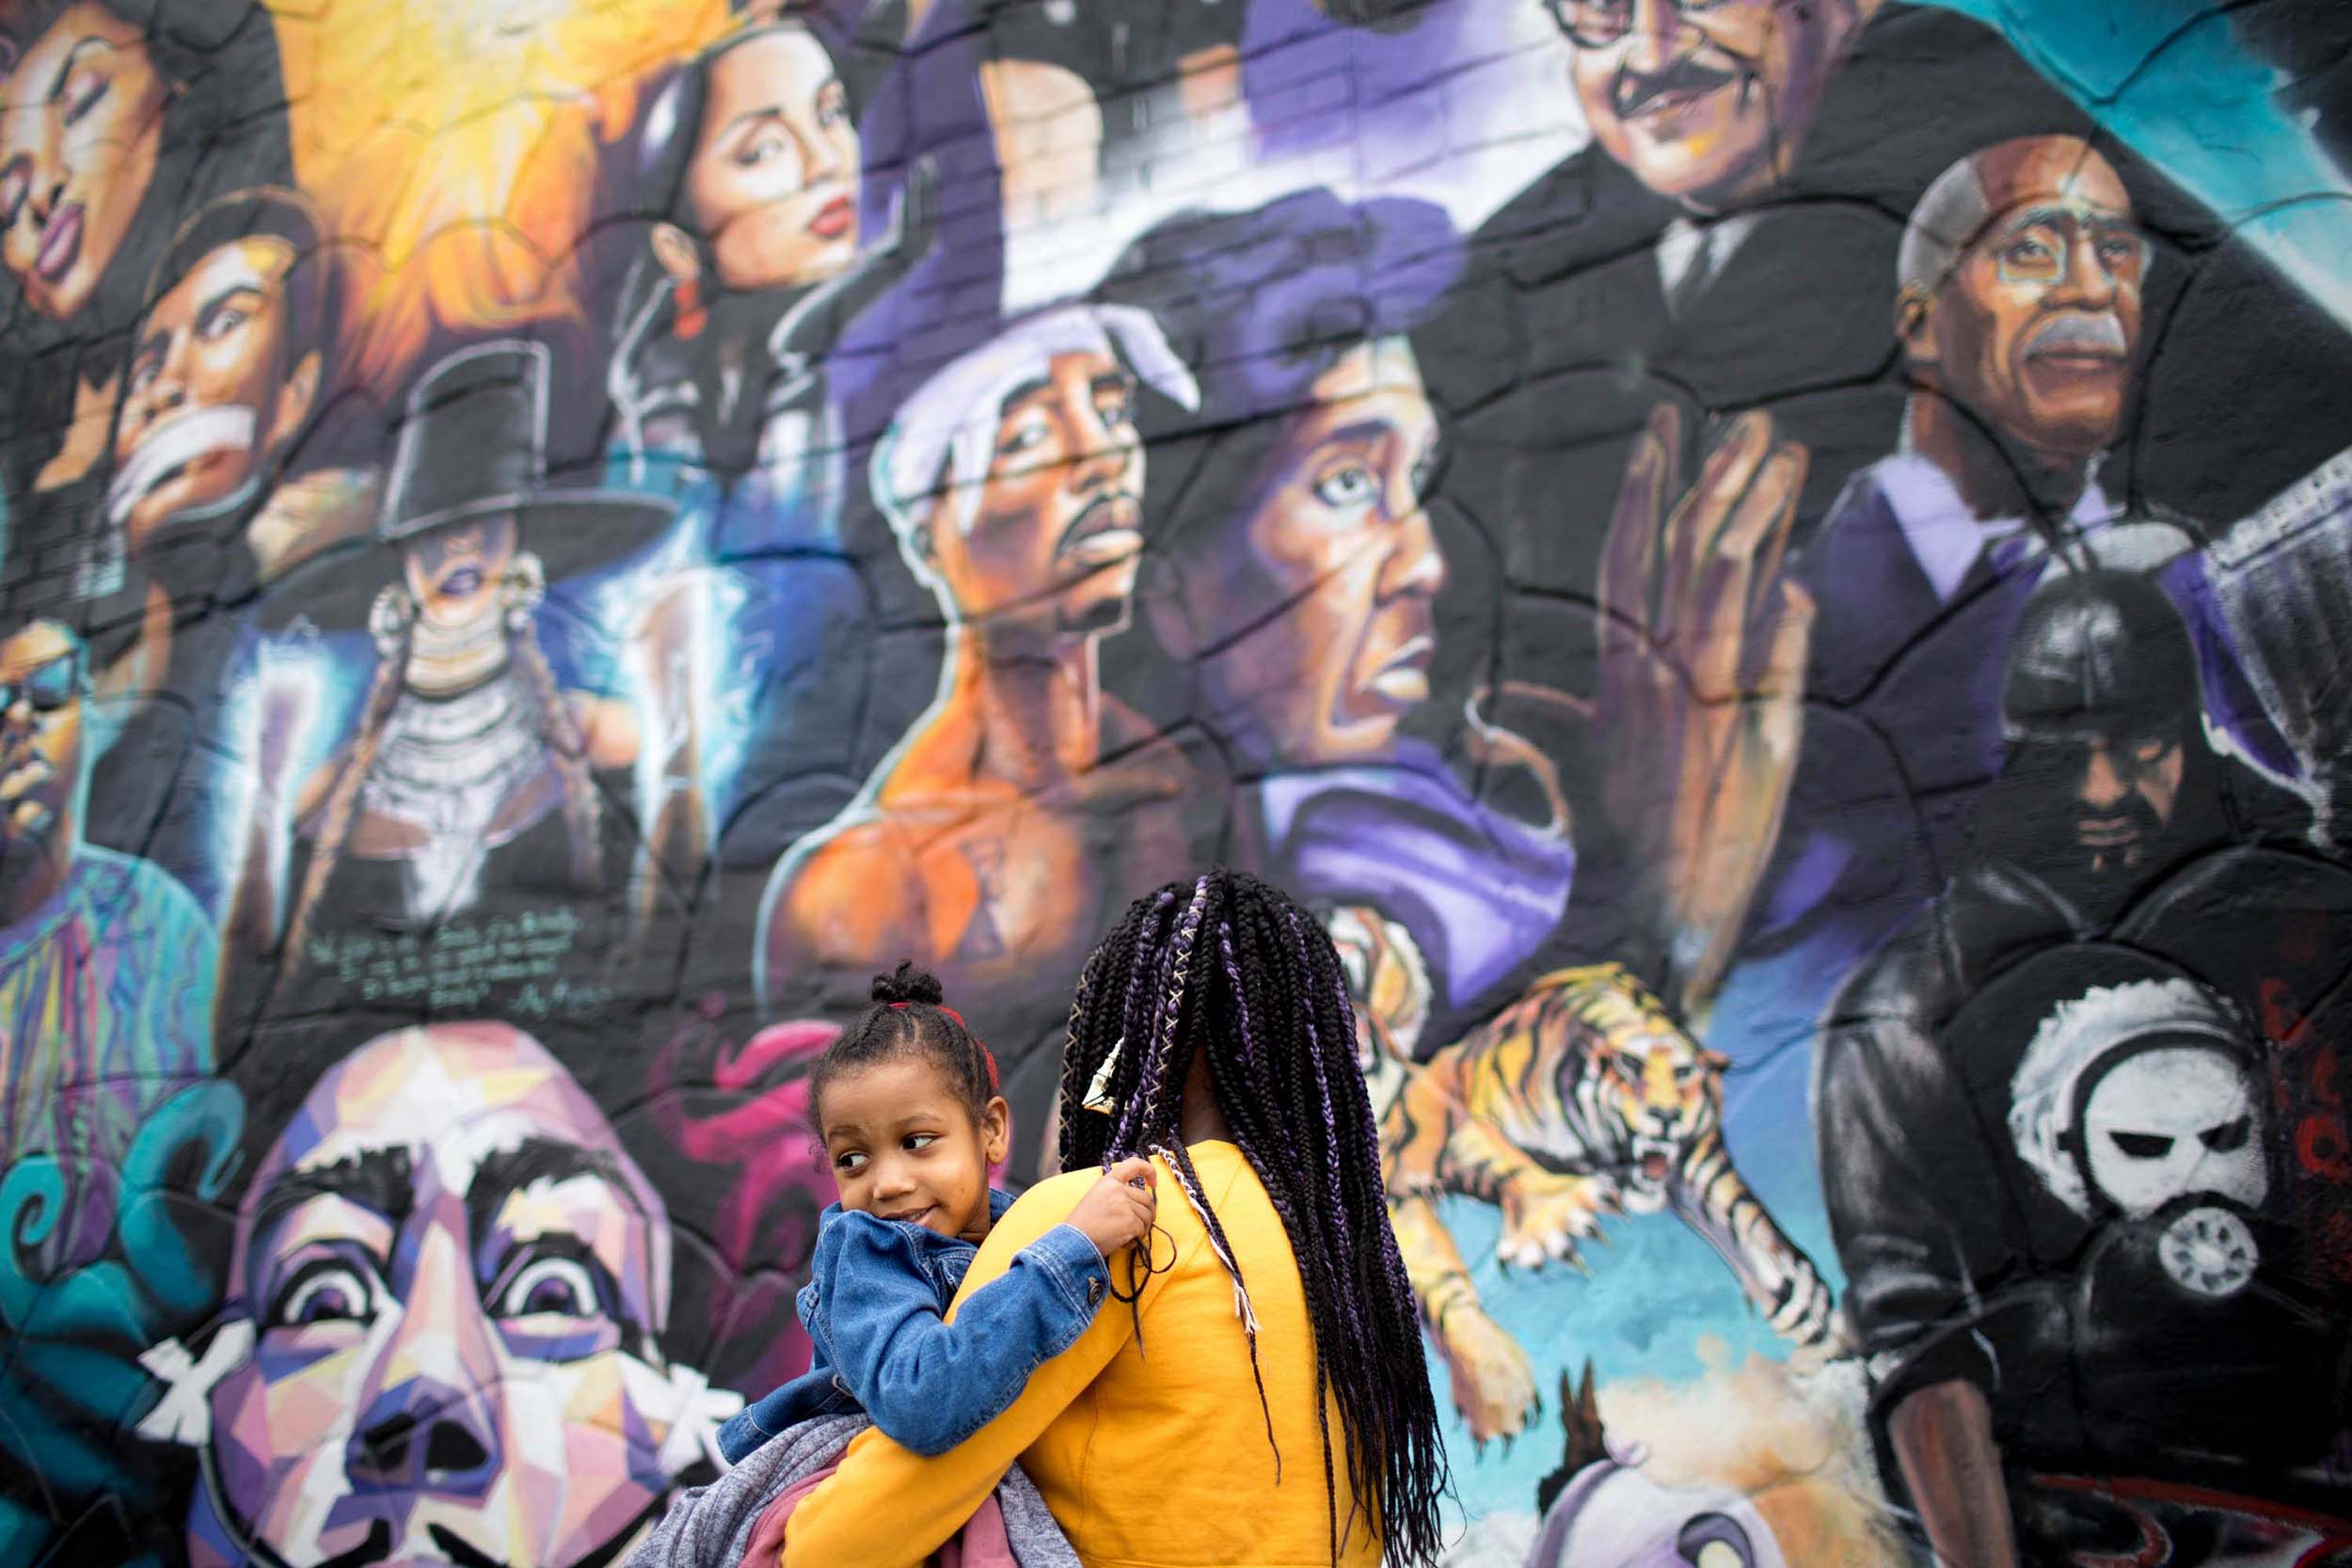 Ayanna Lewis holds a younger relative at the mural unveiling at 12th and Chicon streets in East Austin, Texas, on Feb. 17, 2018. The mural replaced the previous one that honored mostly black musicians after it was painted over by the new owners of the building.